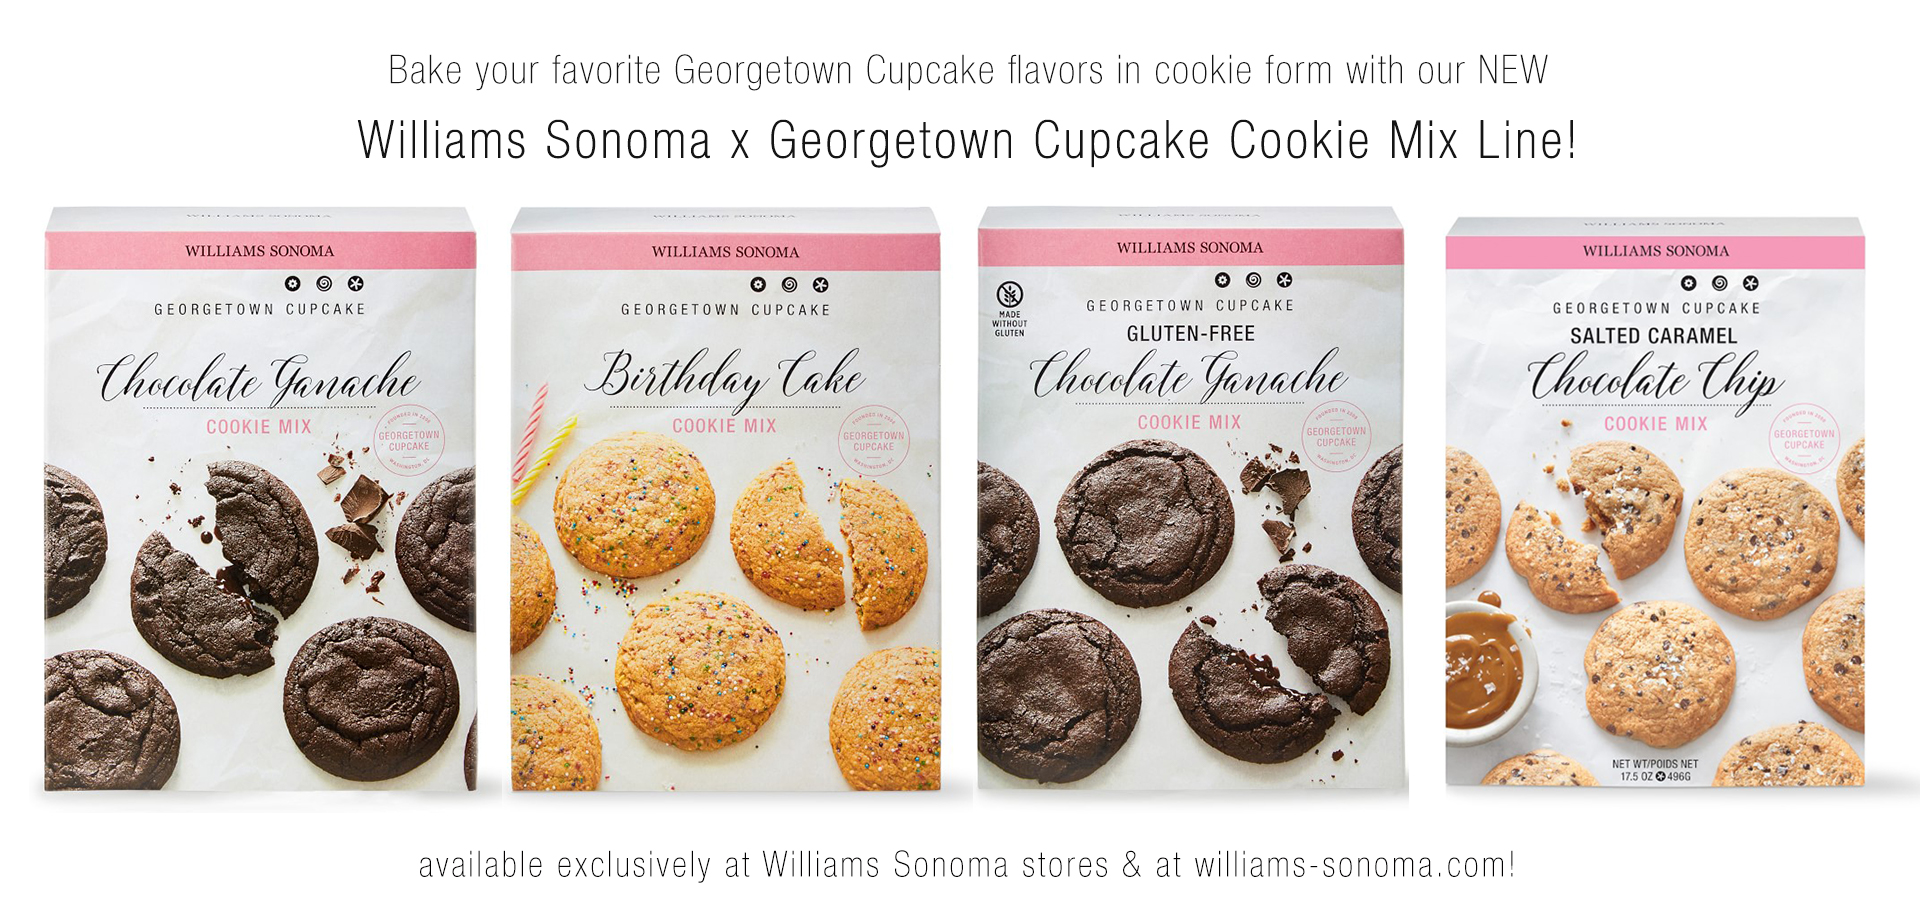 GC_Williams_Sonoma_Cookie_Mix_Web_Scroller.jpg